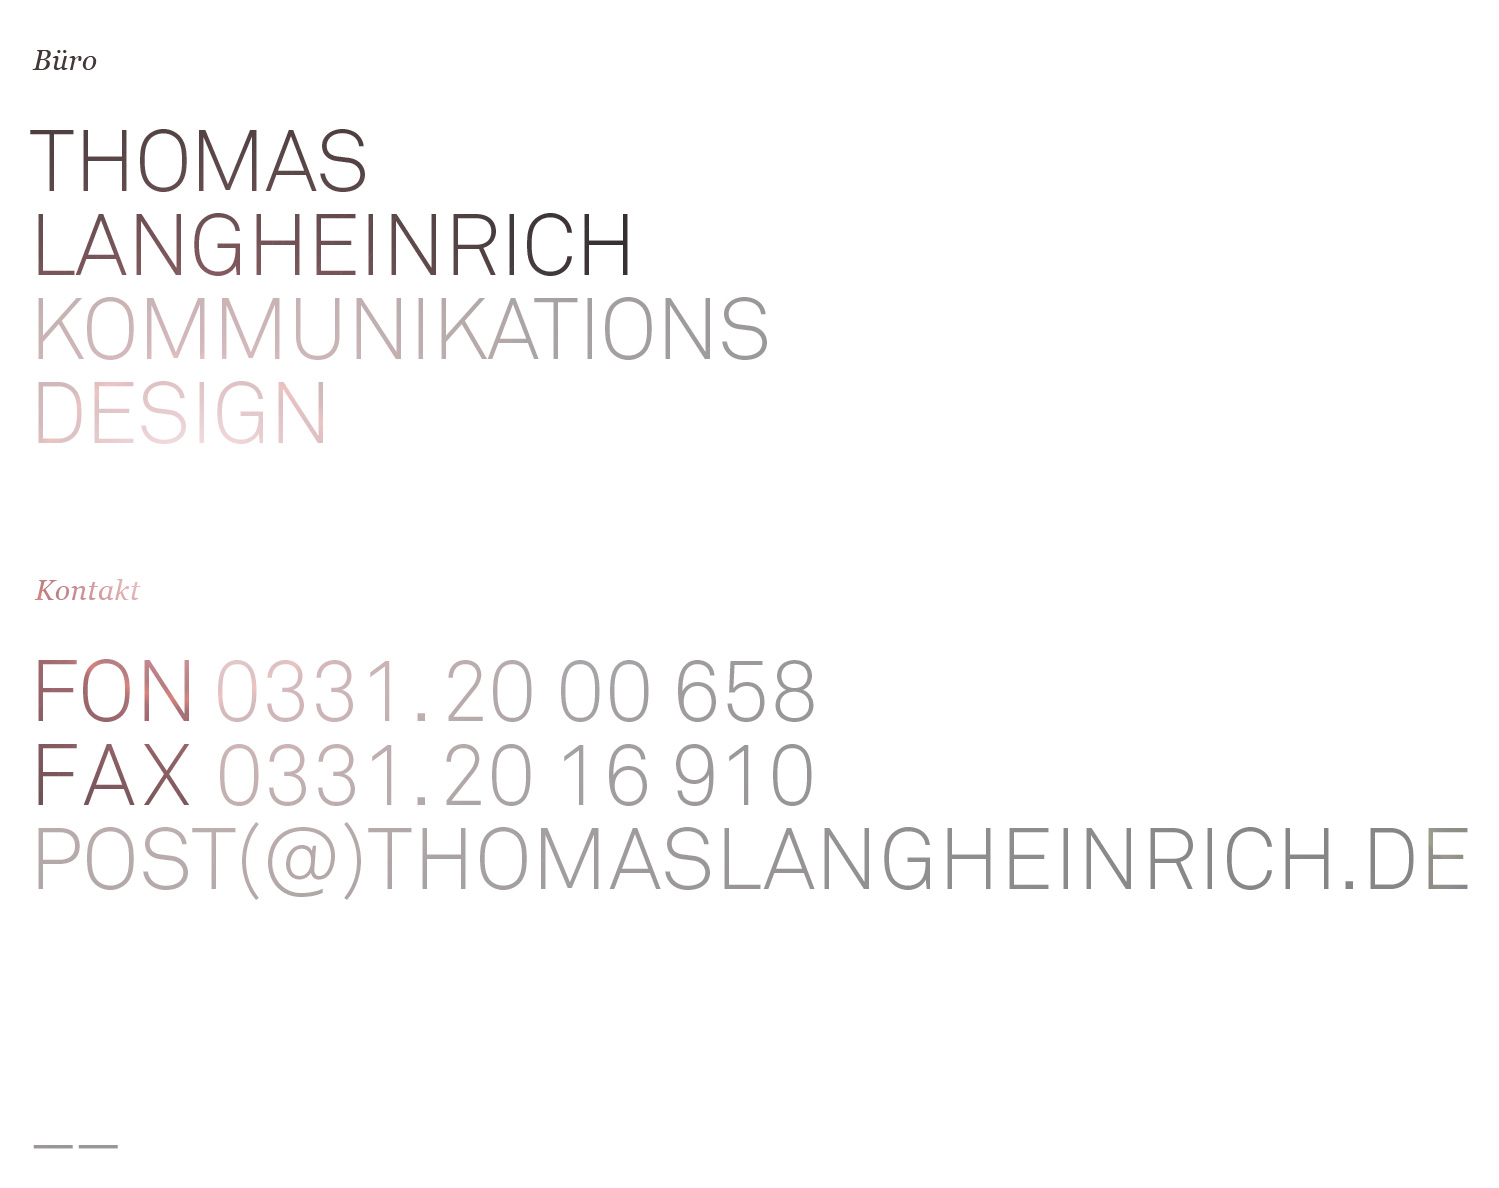 THOMAS LANGHEINRICH · KOMMUNIKATIONSDESIGN